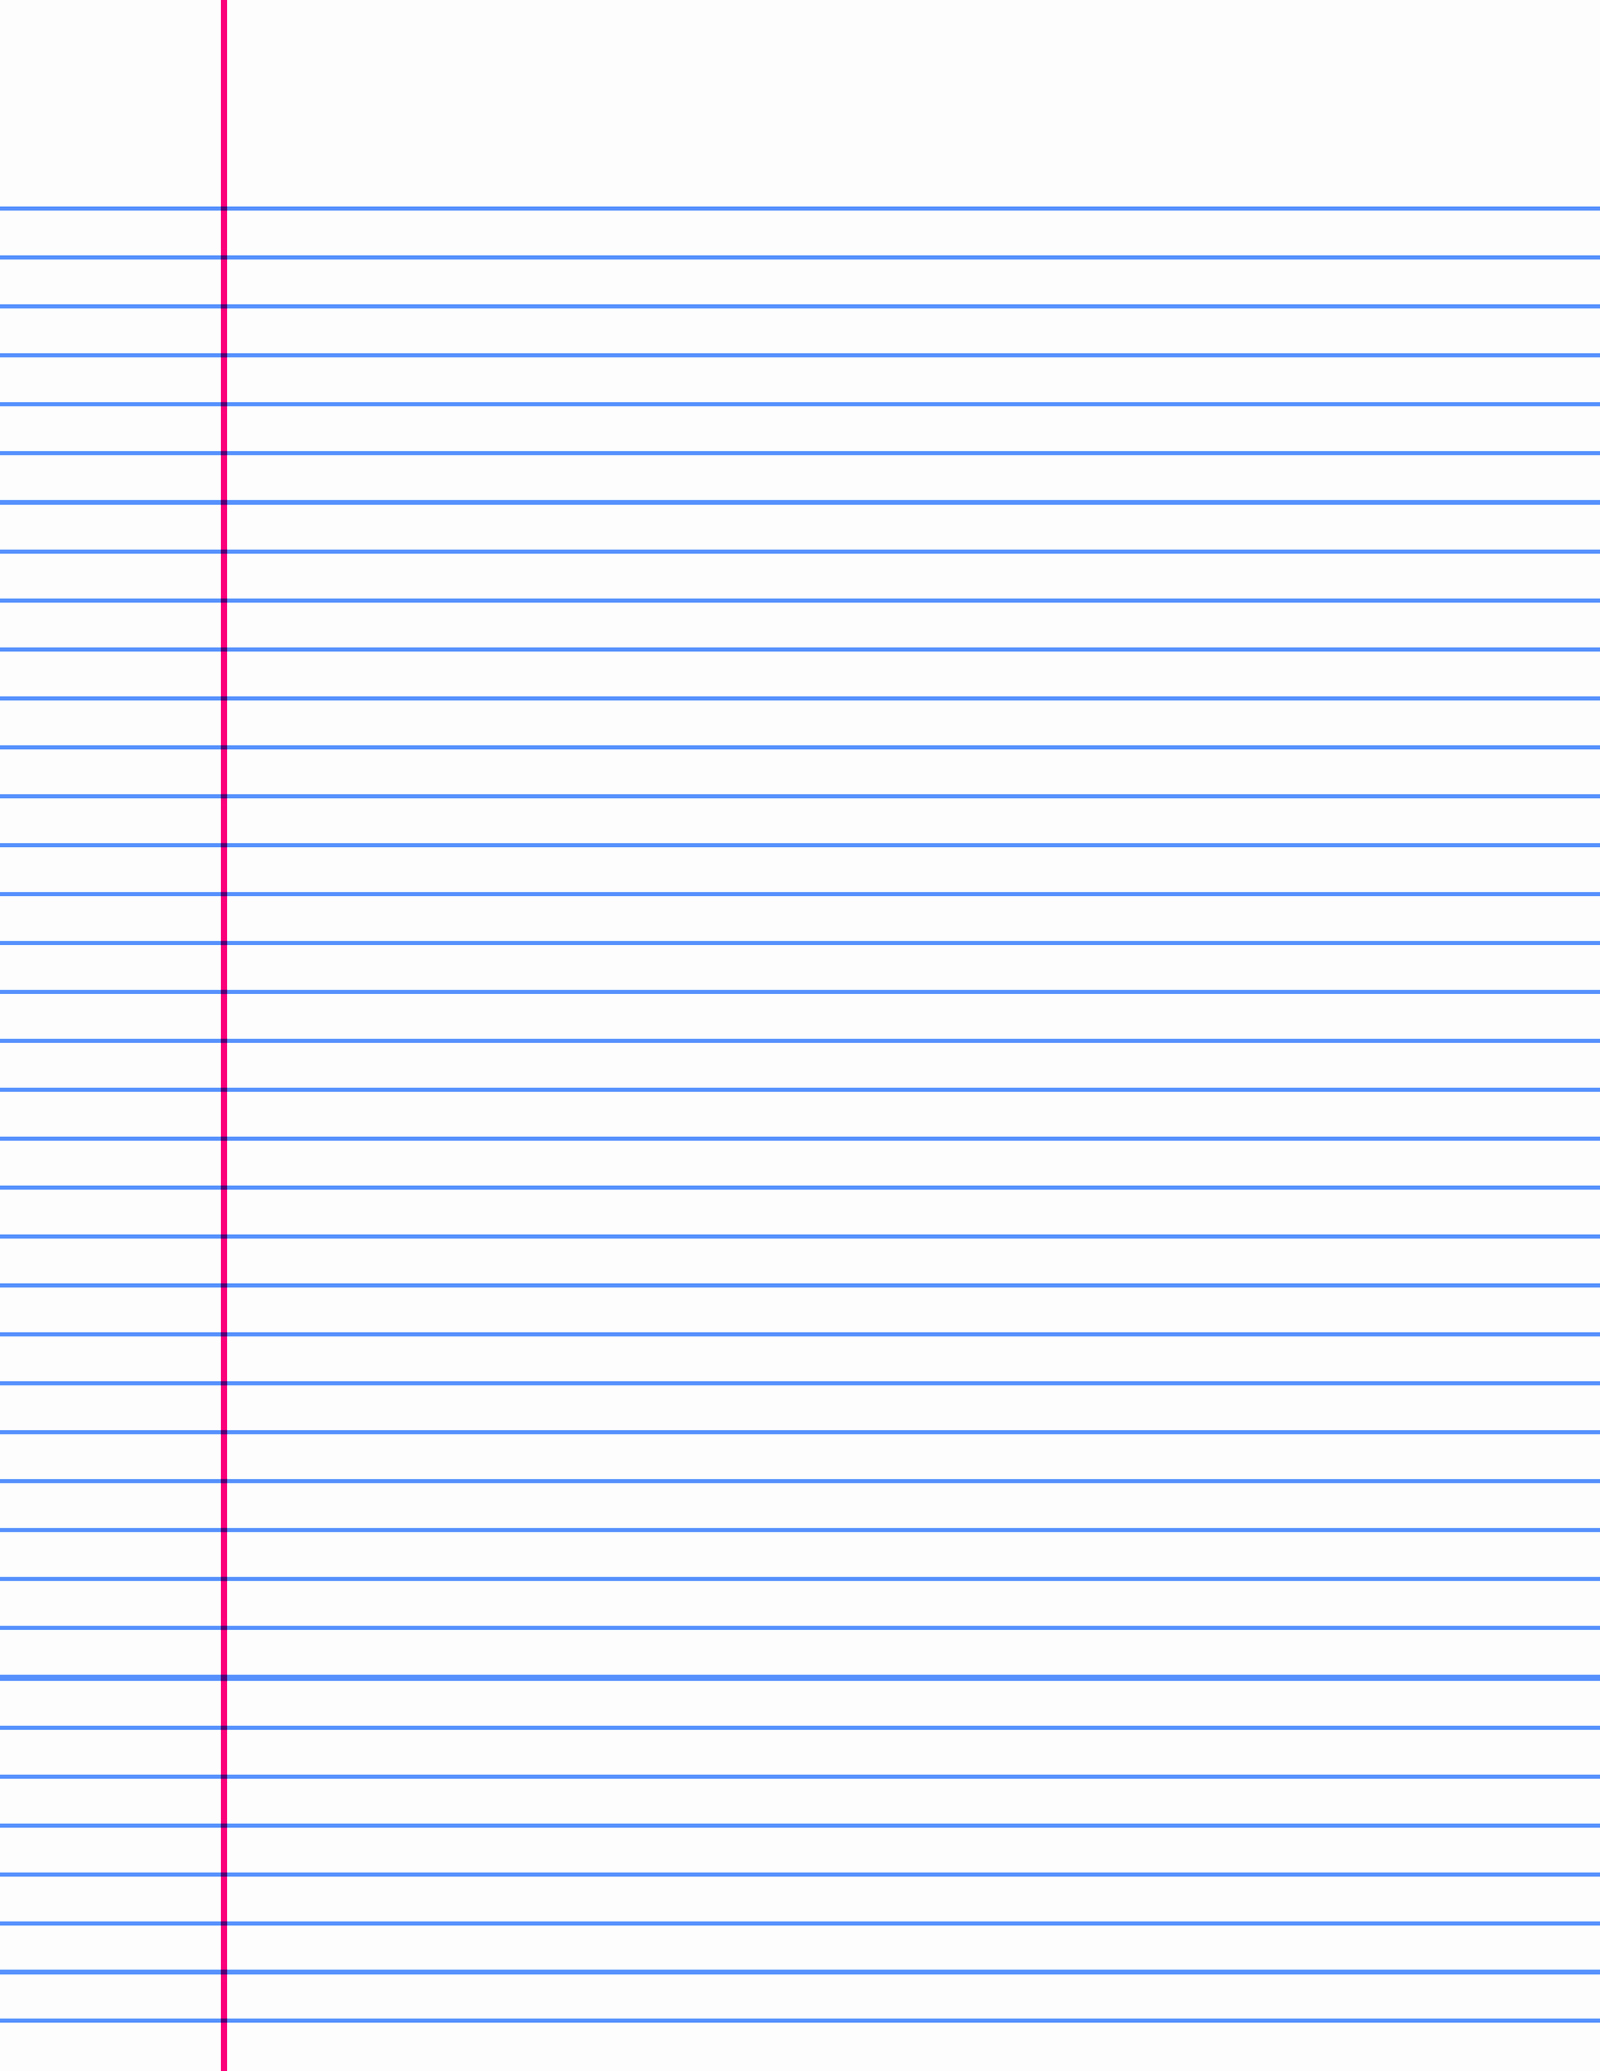 042 Printable Lined Paper College Ruled Awesome Image With Pertaining To College Ruled Lined Paper Template Word 2007